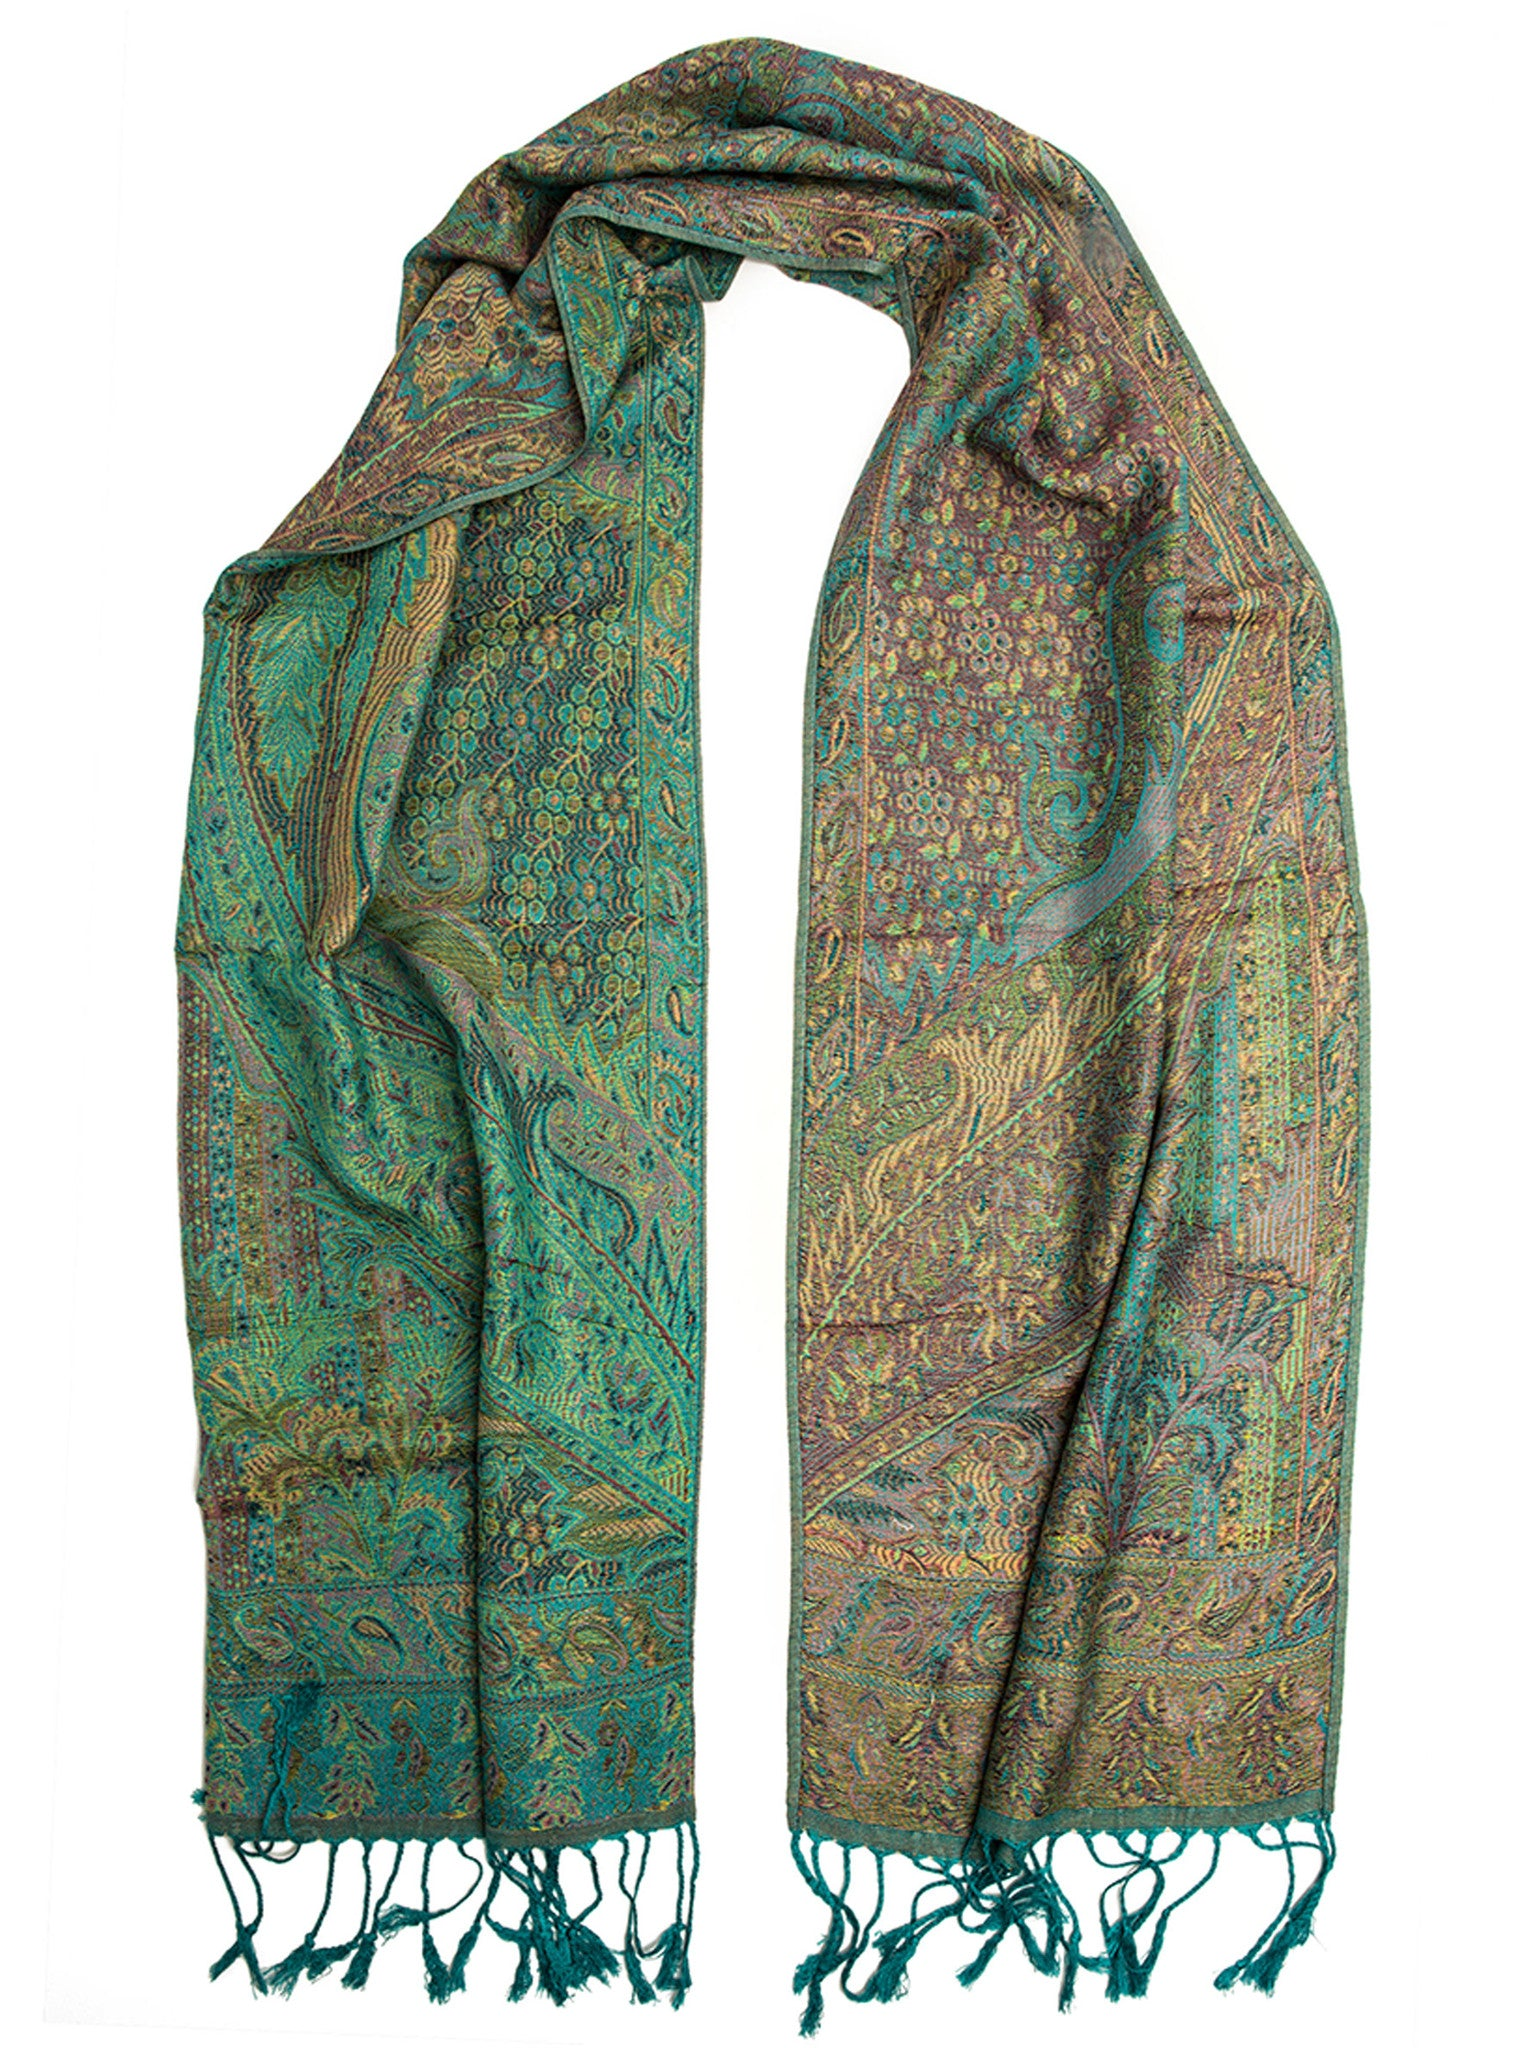 Scarves - Rajana Scarf, Pashmina Indian Paisley Traditional Jacquard Scarf -(Emerald / One Size) Bohomonde  - 4